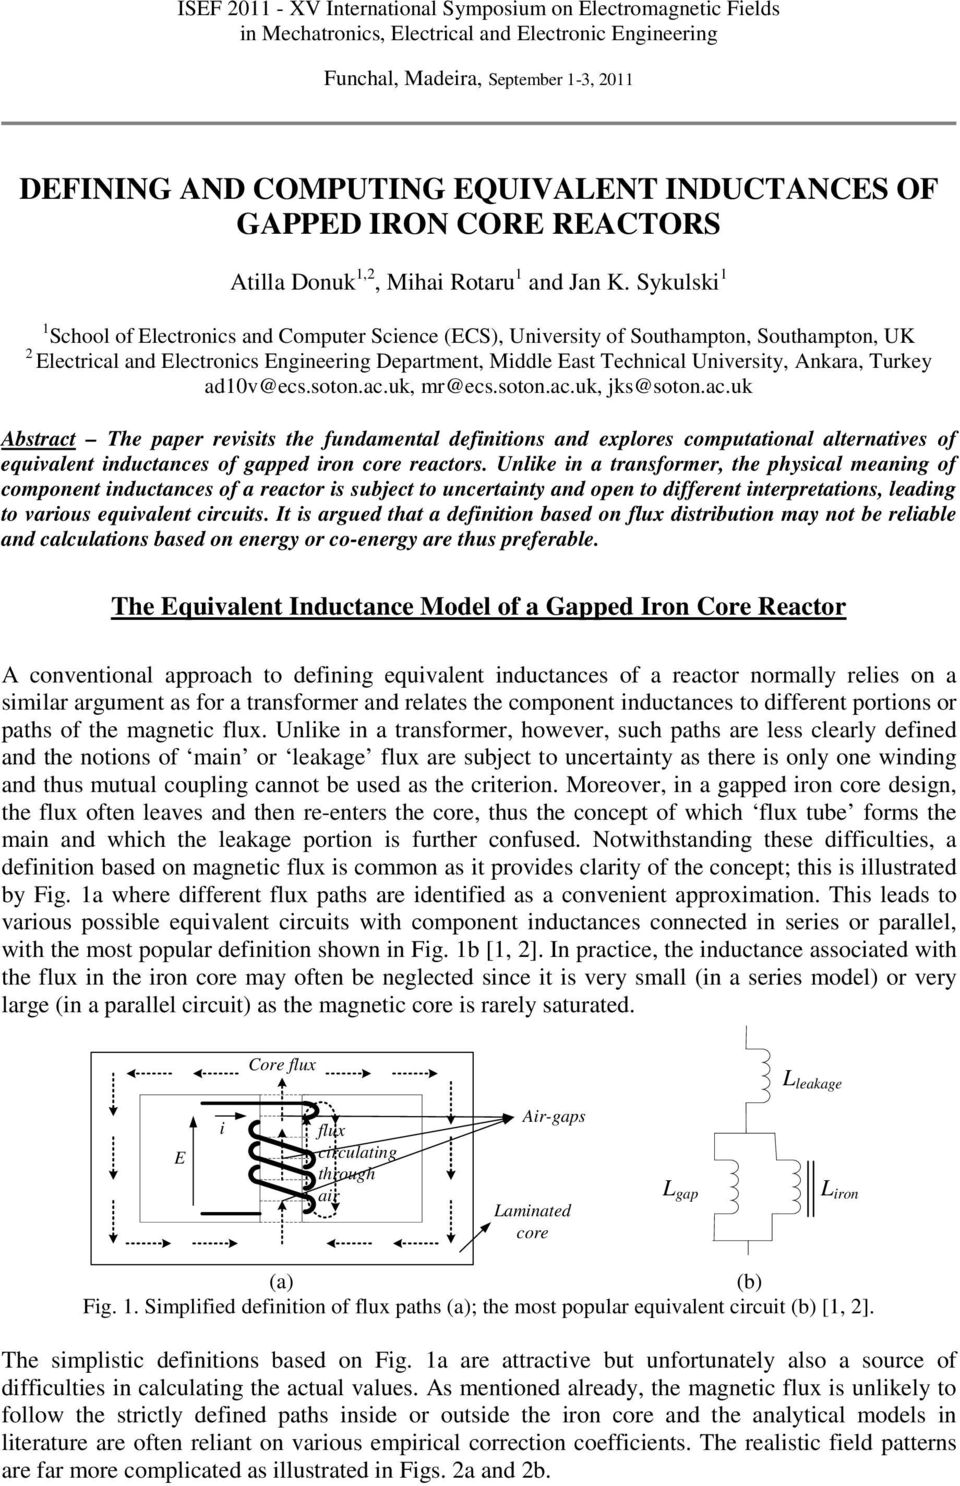 Defining And Computing Equivalent Inductances Of Gapped Iron Core The Inductance Following Inductive Circuit Sykulski School Electronics Computer Science Ecs University Southampton